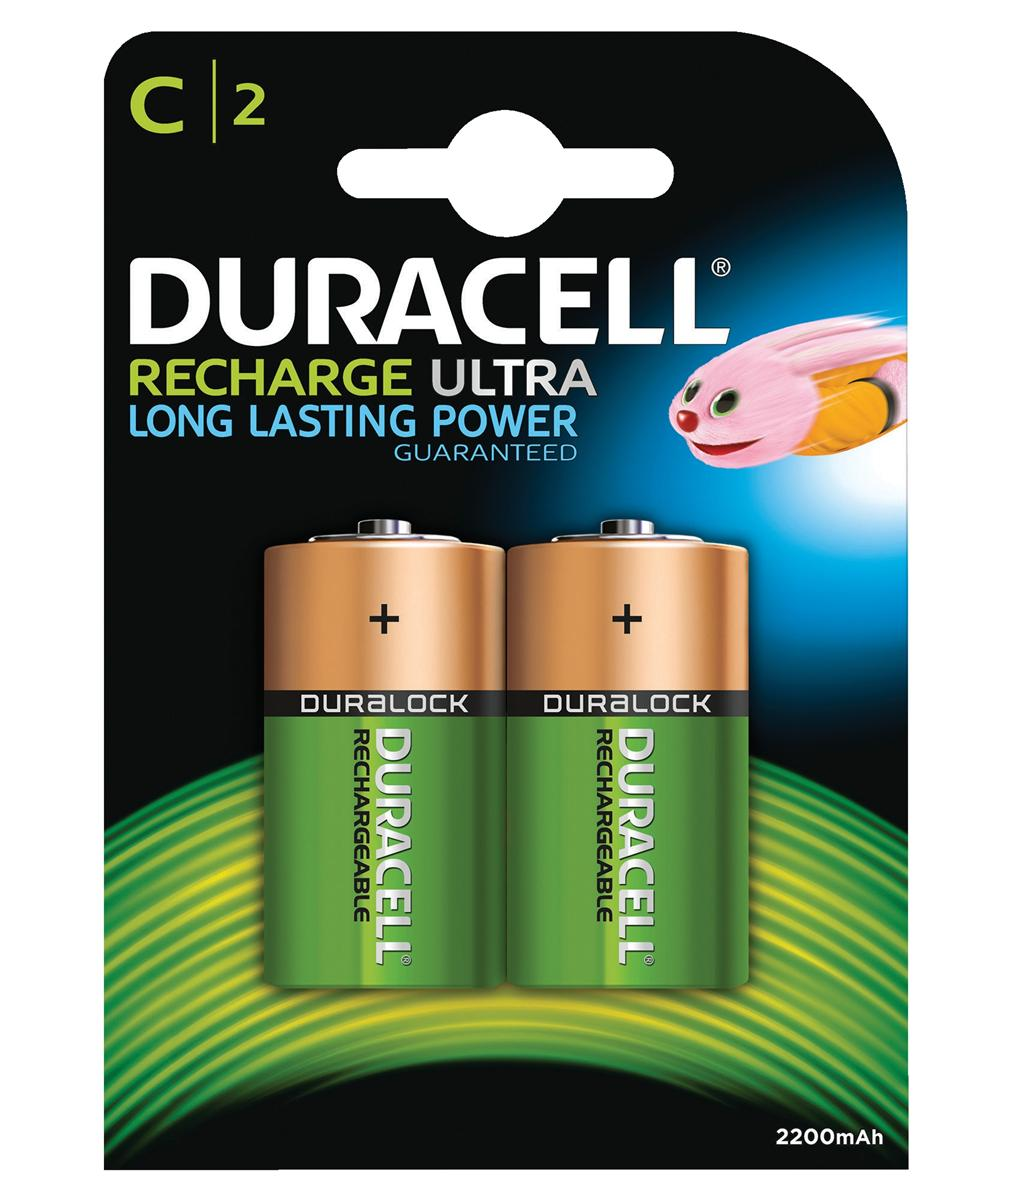 Image for Duracell Battery Rechargeable Accu NiMH 2200mAh C Ref 81364720 [Pack 2]